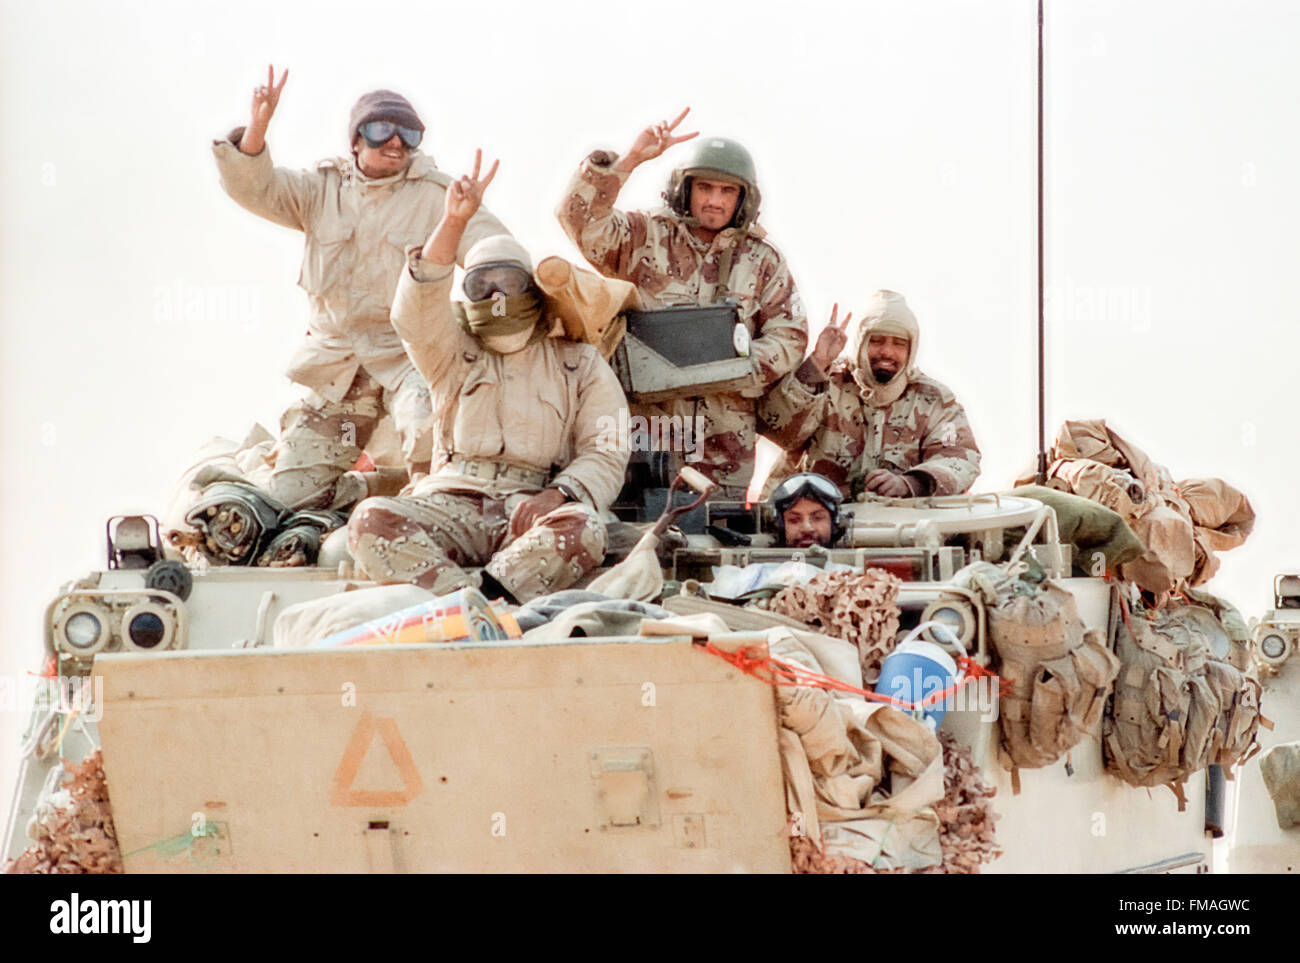 Saudi Arabian soldiers flash the victory sign during clean up operations following the Battle of Khafji February - Stock Image